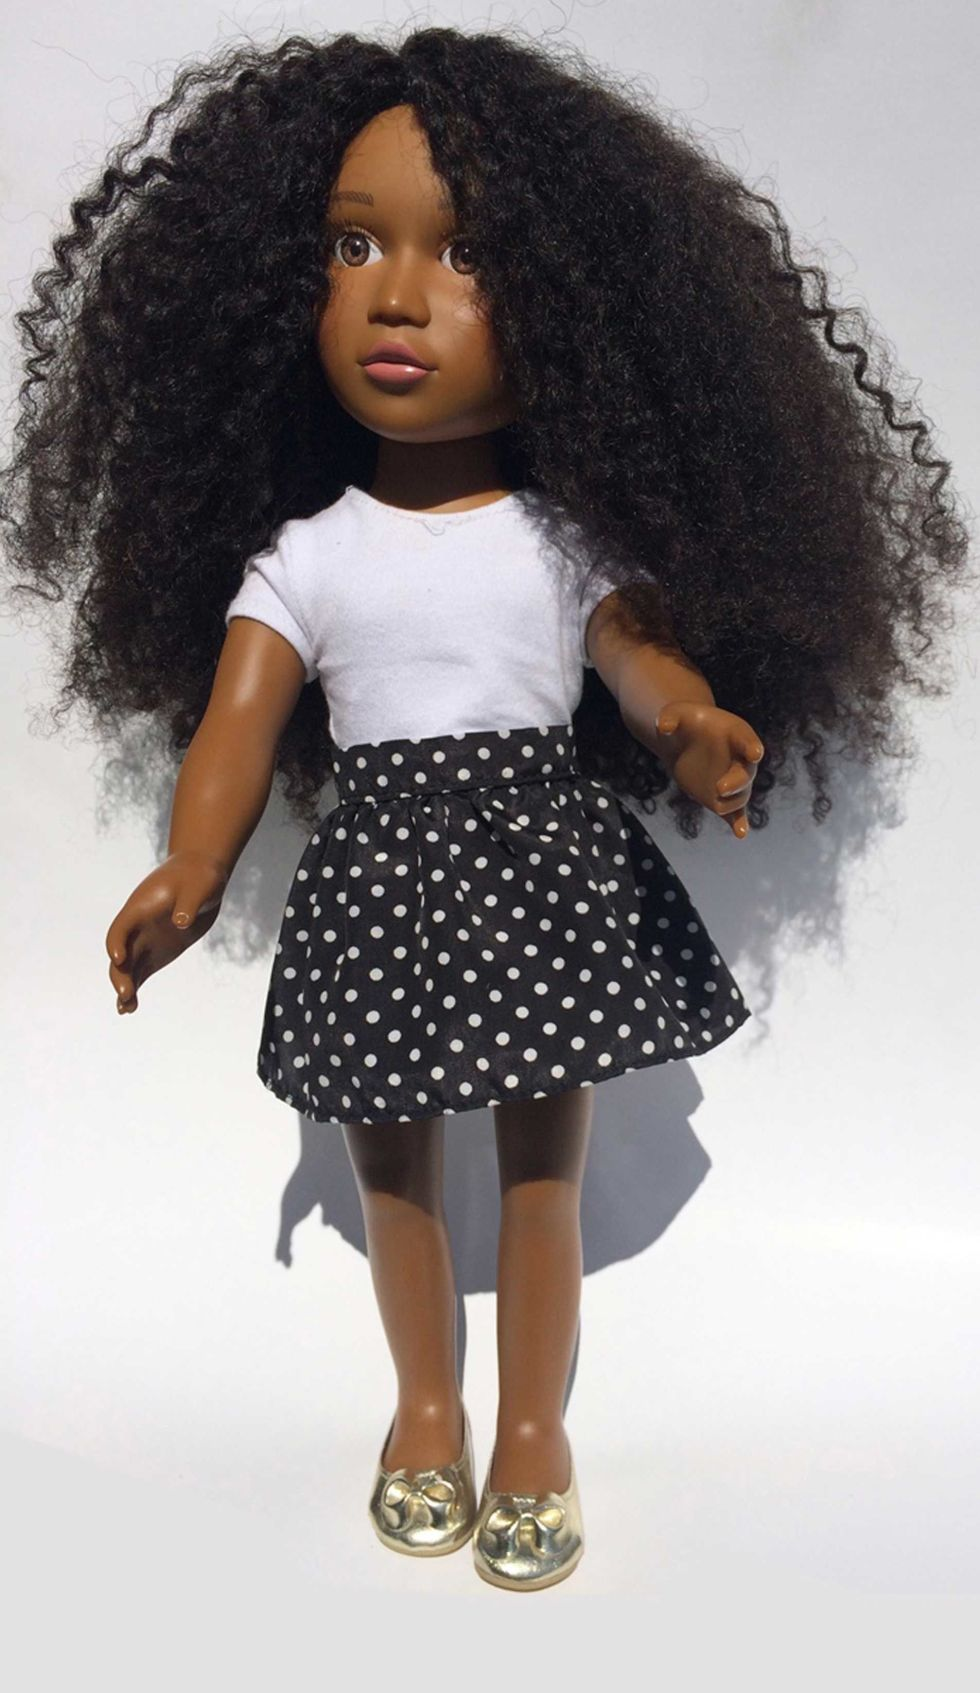 Girls with natural hair finally have a doll who looks like